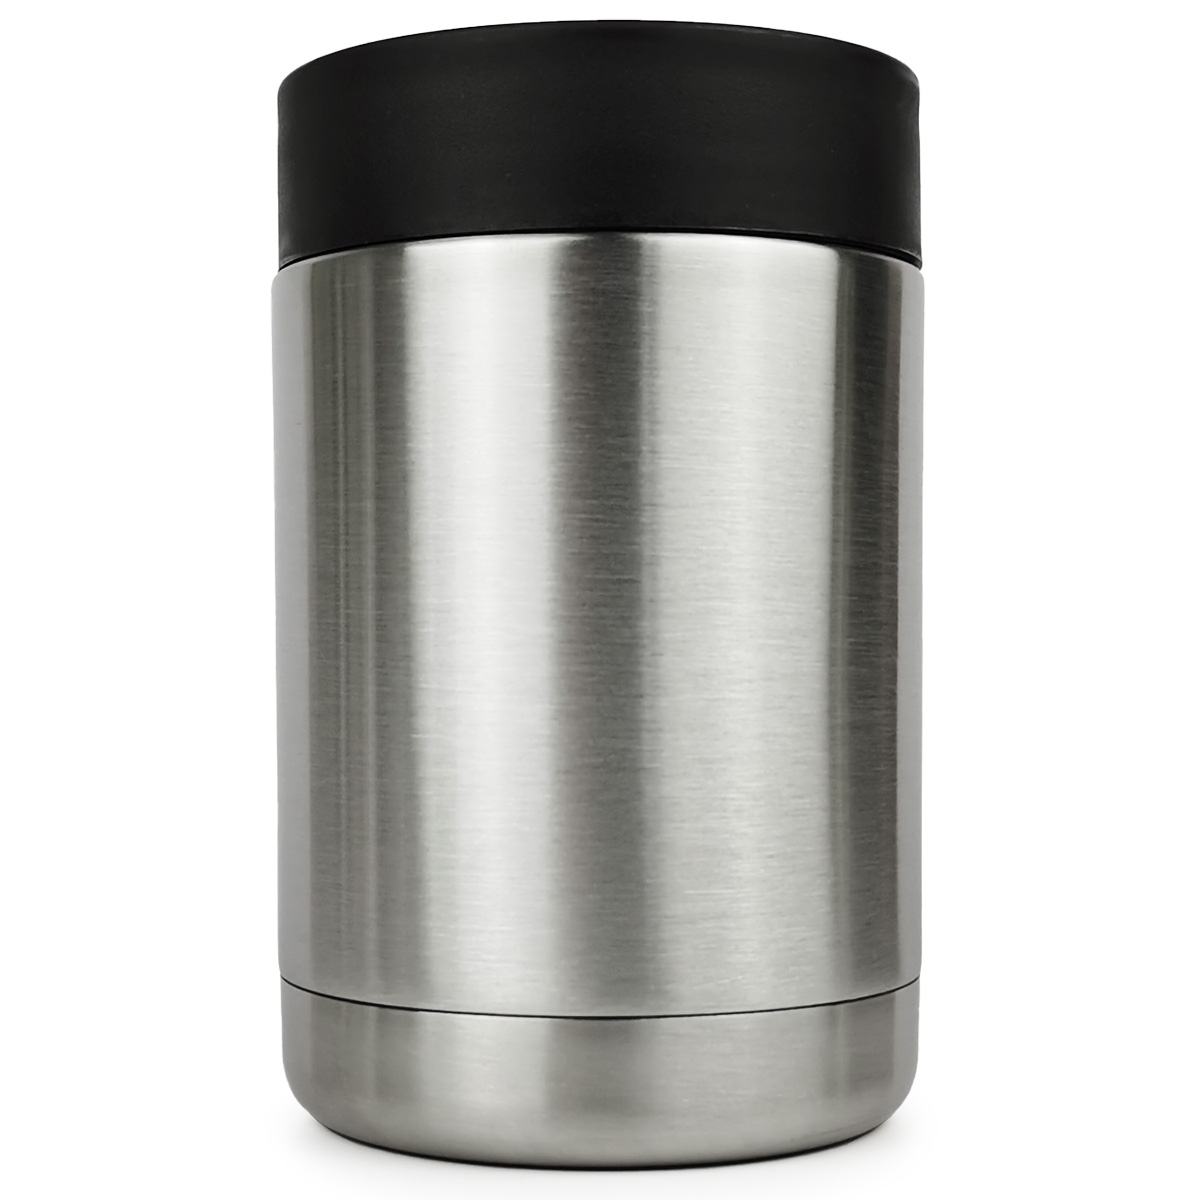 CALCA 12OZ Stainless Steel Beer Bottle Cooler Double Vacuum Insulated for Coke Cans